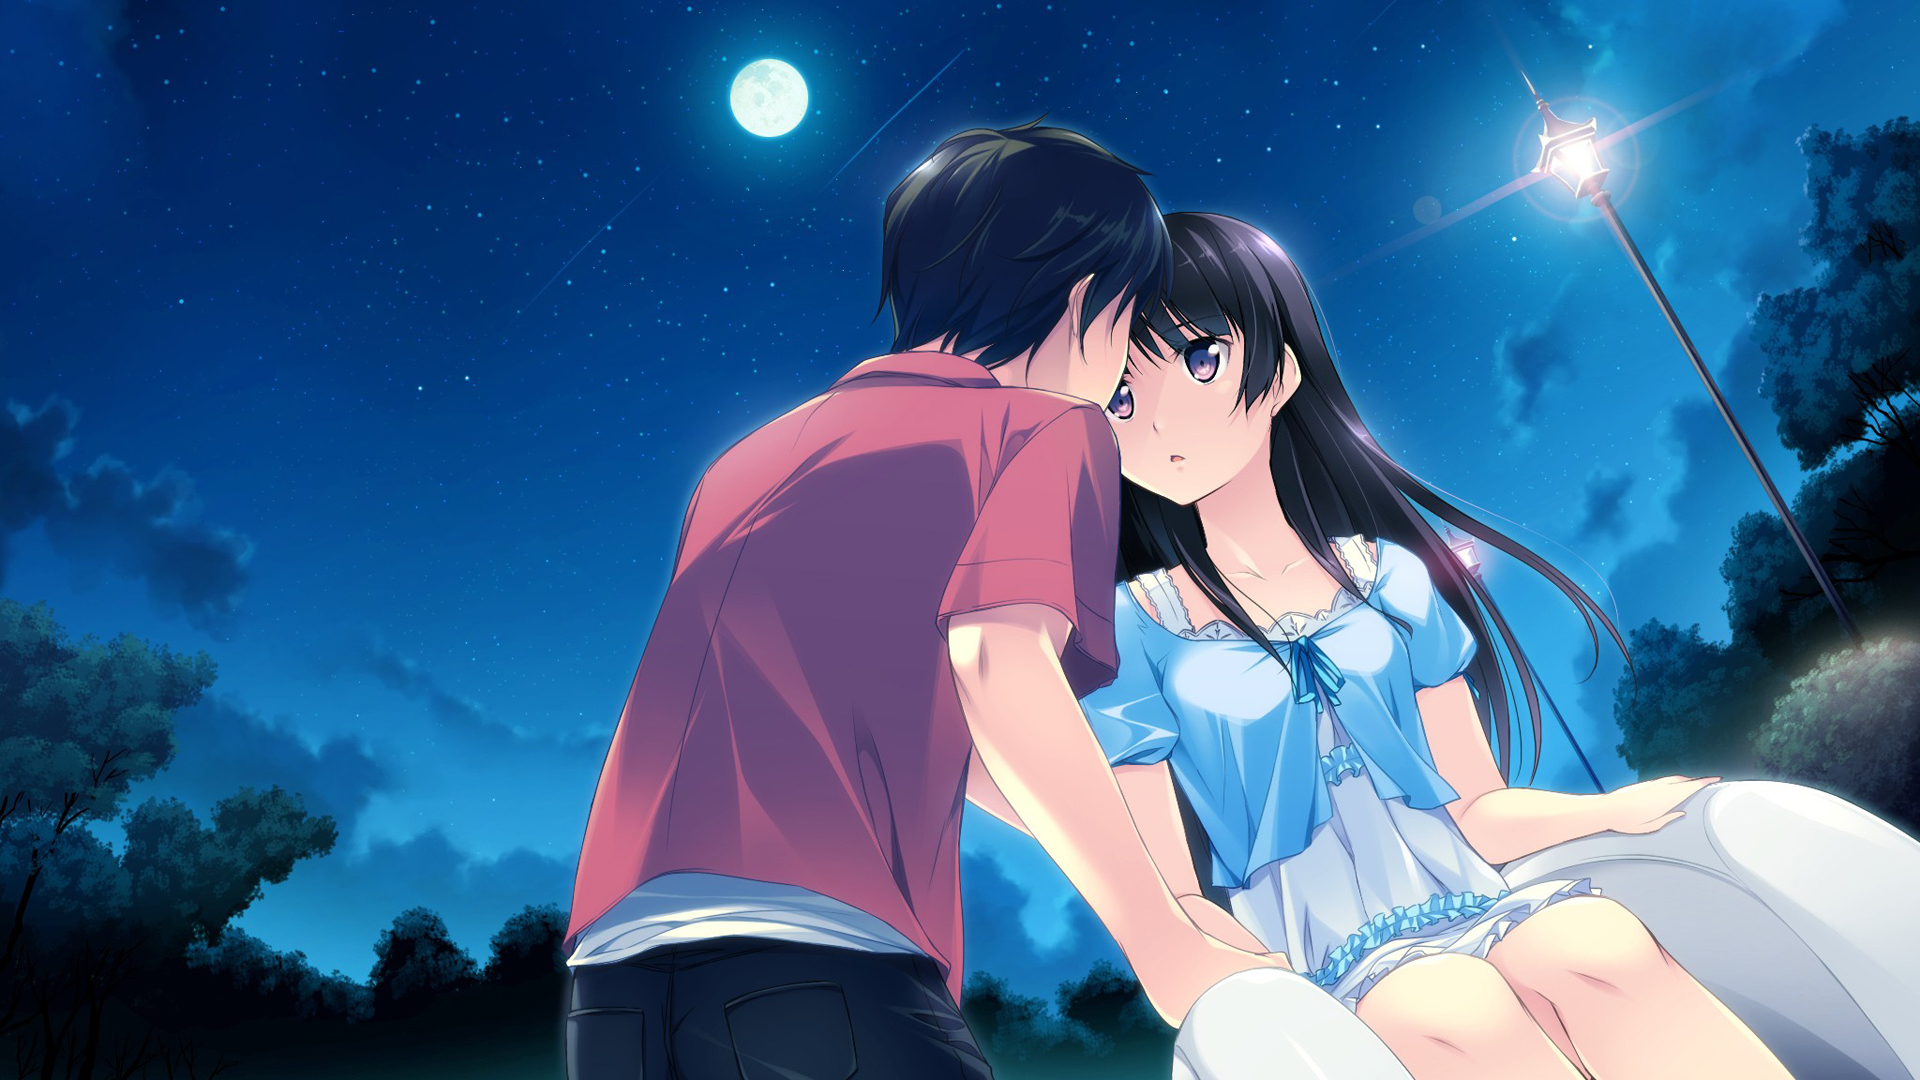 Anime Images Wallpaper Love Couples Couple Hd Wallpaper: HD Wallpaper Love Couple 1920x1080